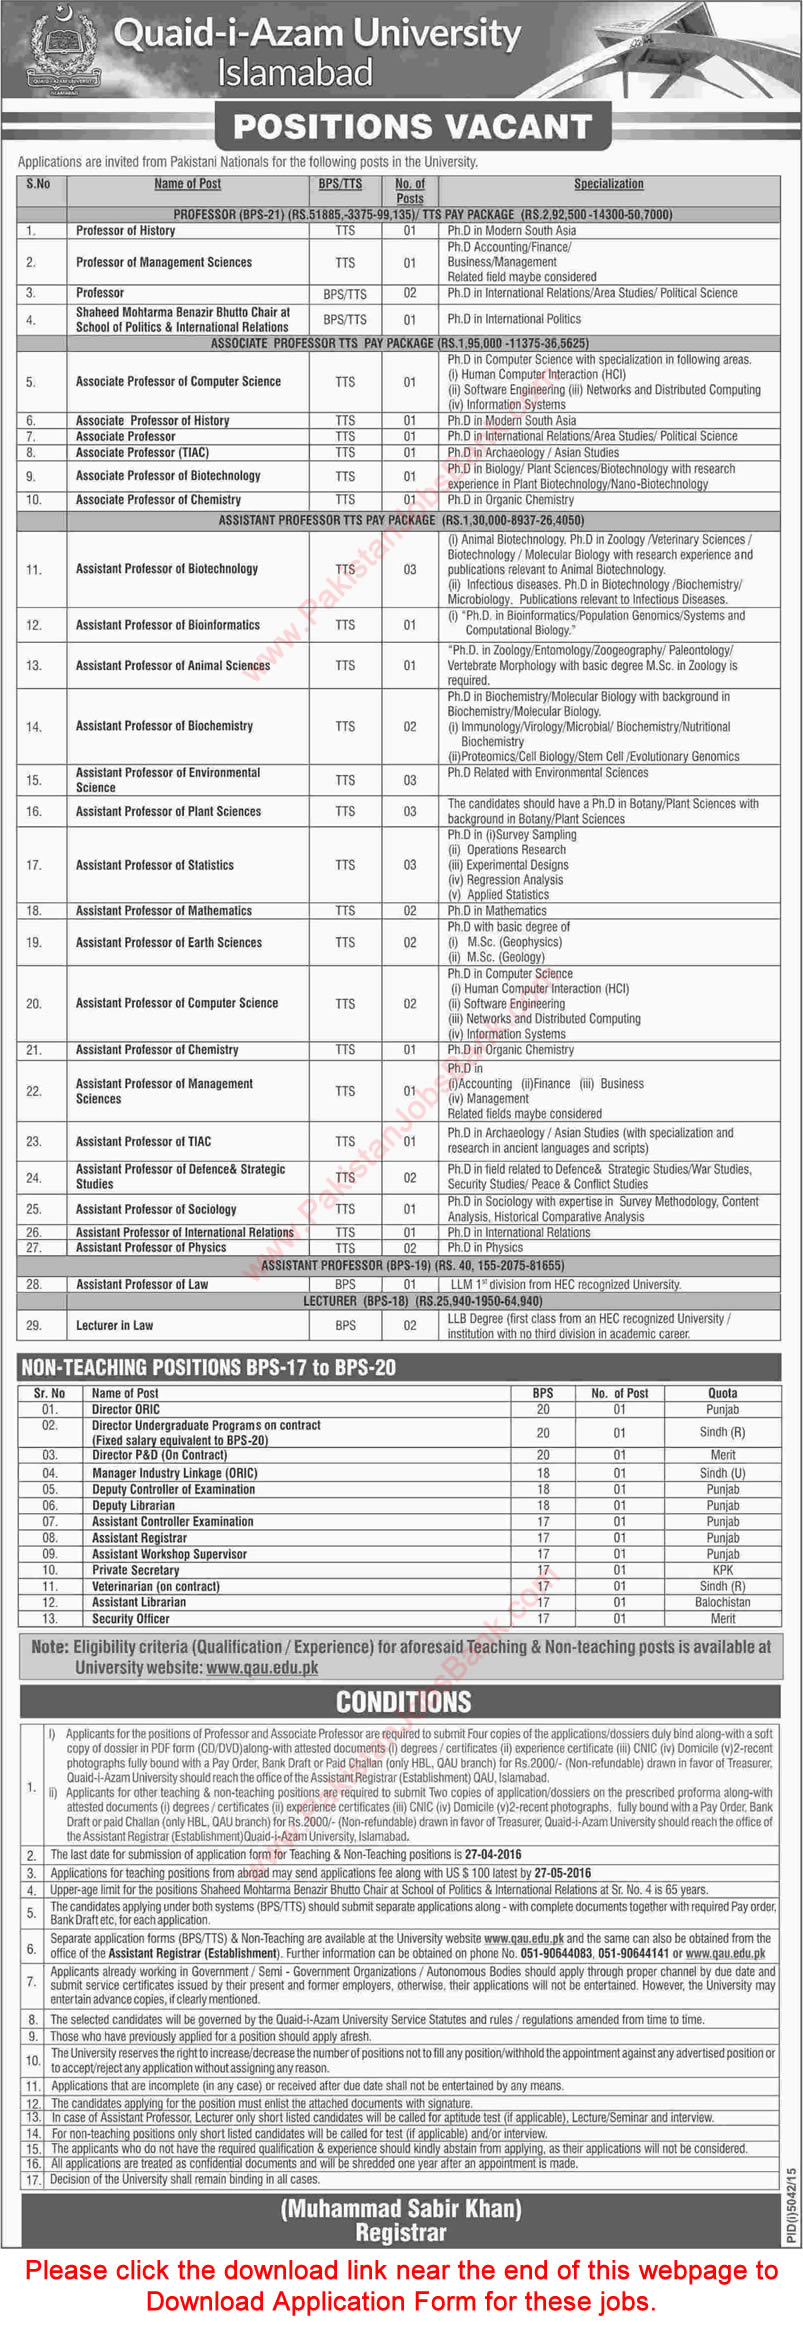 Ad_Dawn_Job_20160327_016 Qau Degree Application Form on dept chmistry, bba department, it department, university logo, islamabad logo, earth science, fee structure for bs, itt dr names, faculty male, dr amena zubari, closing merit, islamabad round area, faculty female,